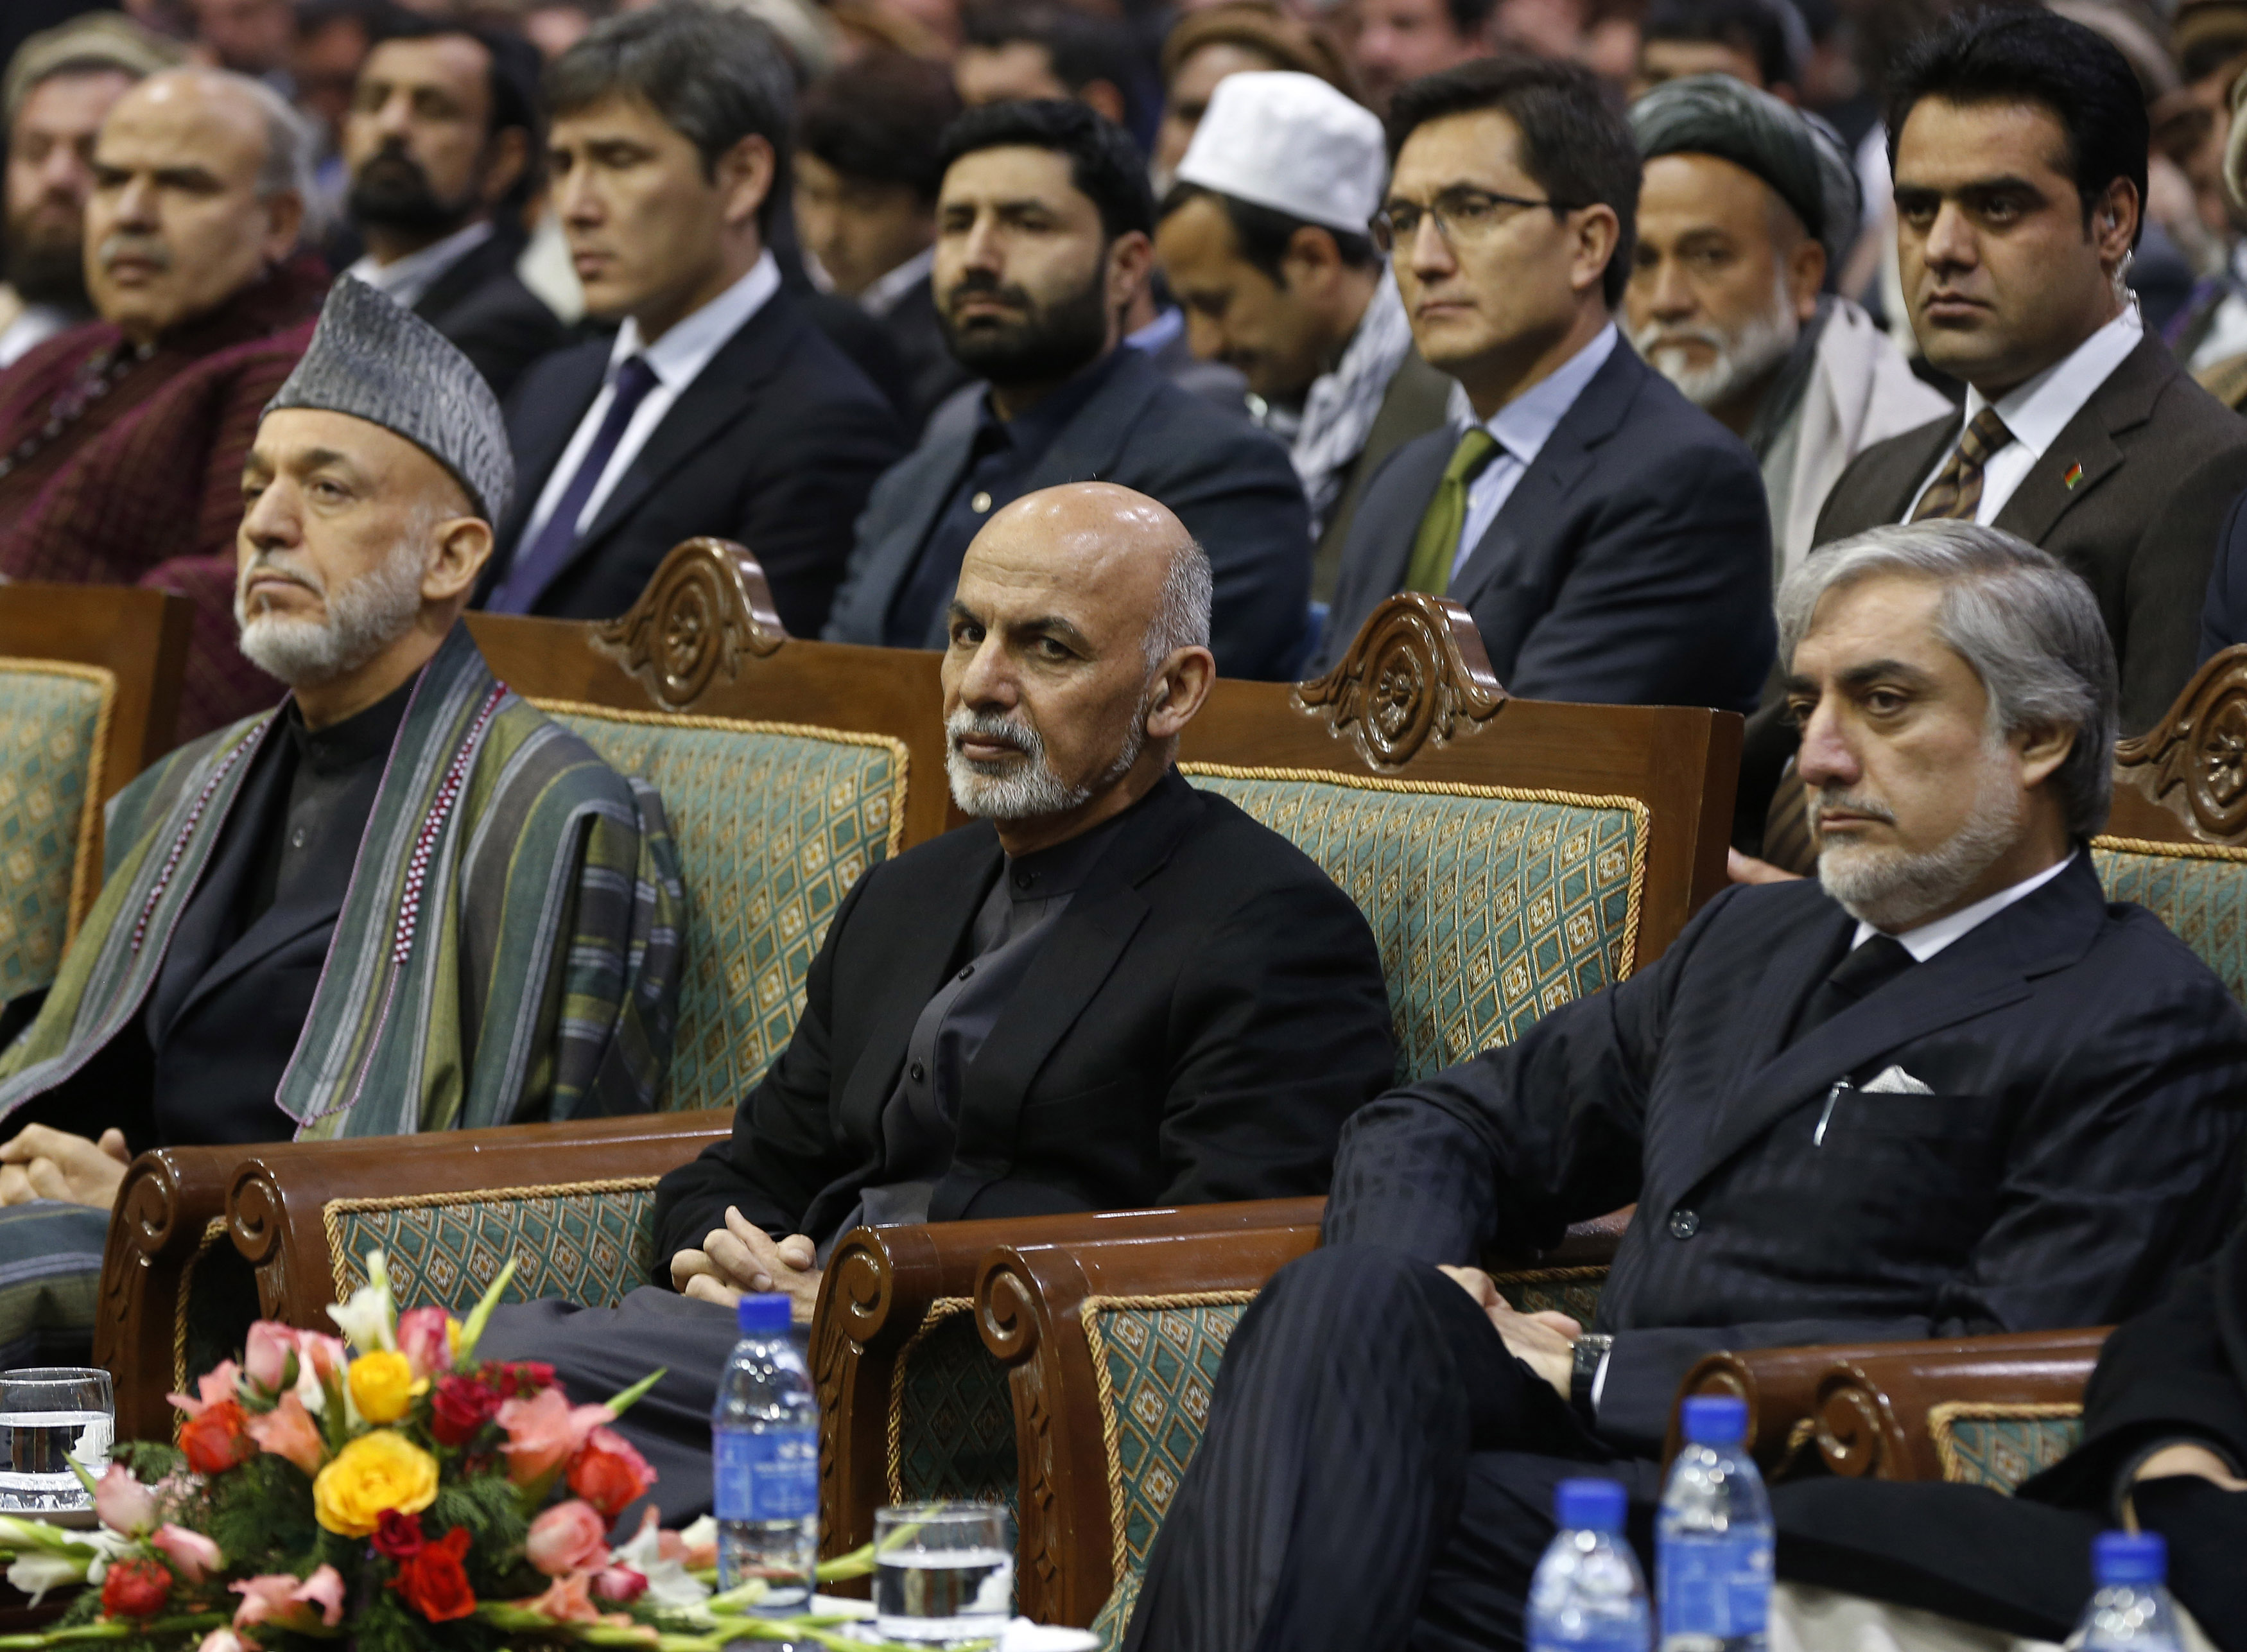 Afghan President Ashraf Ghani (C) attends a commemoration of the first death anniversary of former vice president Mohammad Qasim Fahim, also known as the Marshal of Afghanistan, in Kabul March 9, 2015. On the left is former President Hamid Karzai and Chief Executive Abdullah Abdullah is seen on the right. REUTERS/Omar Sobhani (AFGHANISTAN - Tags: ANNIVERSARY POLITICS)